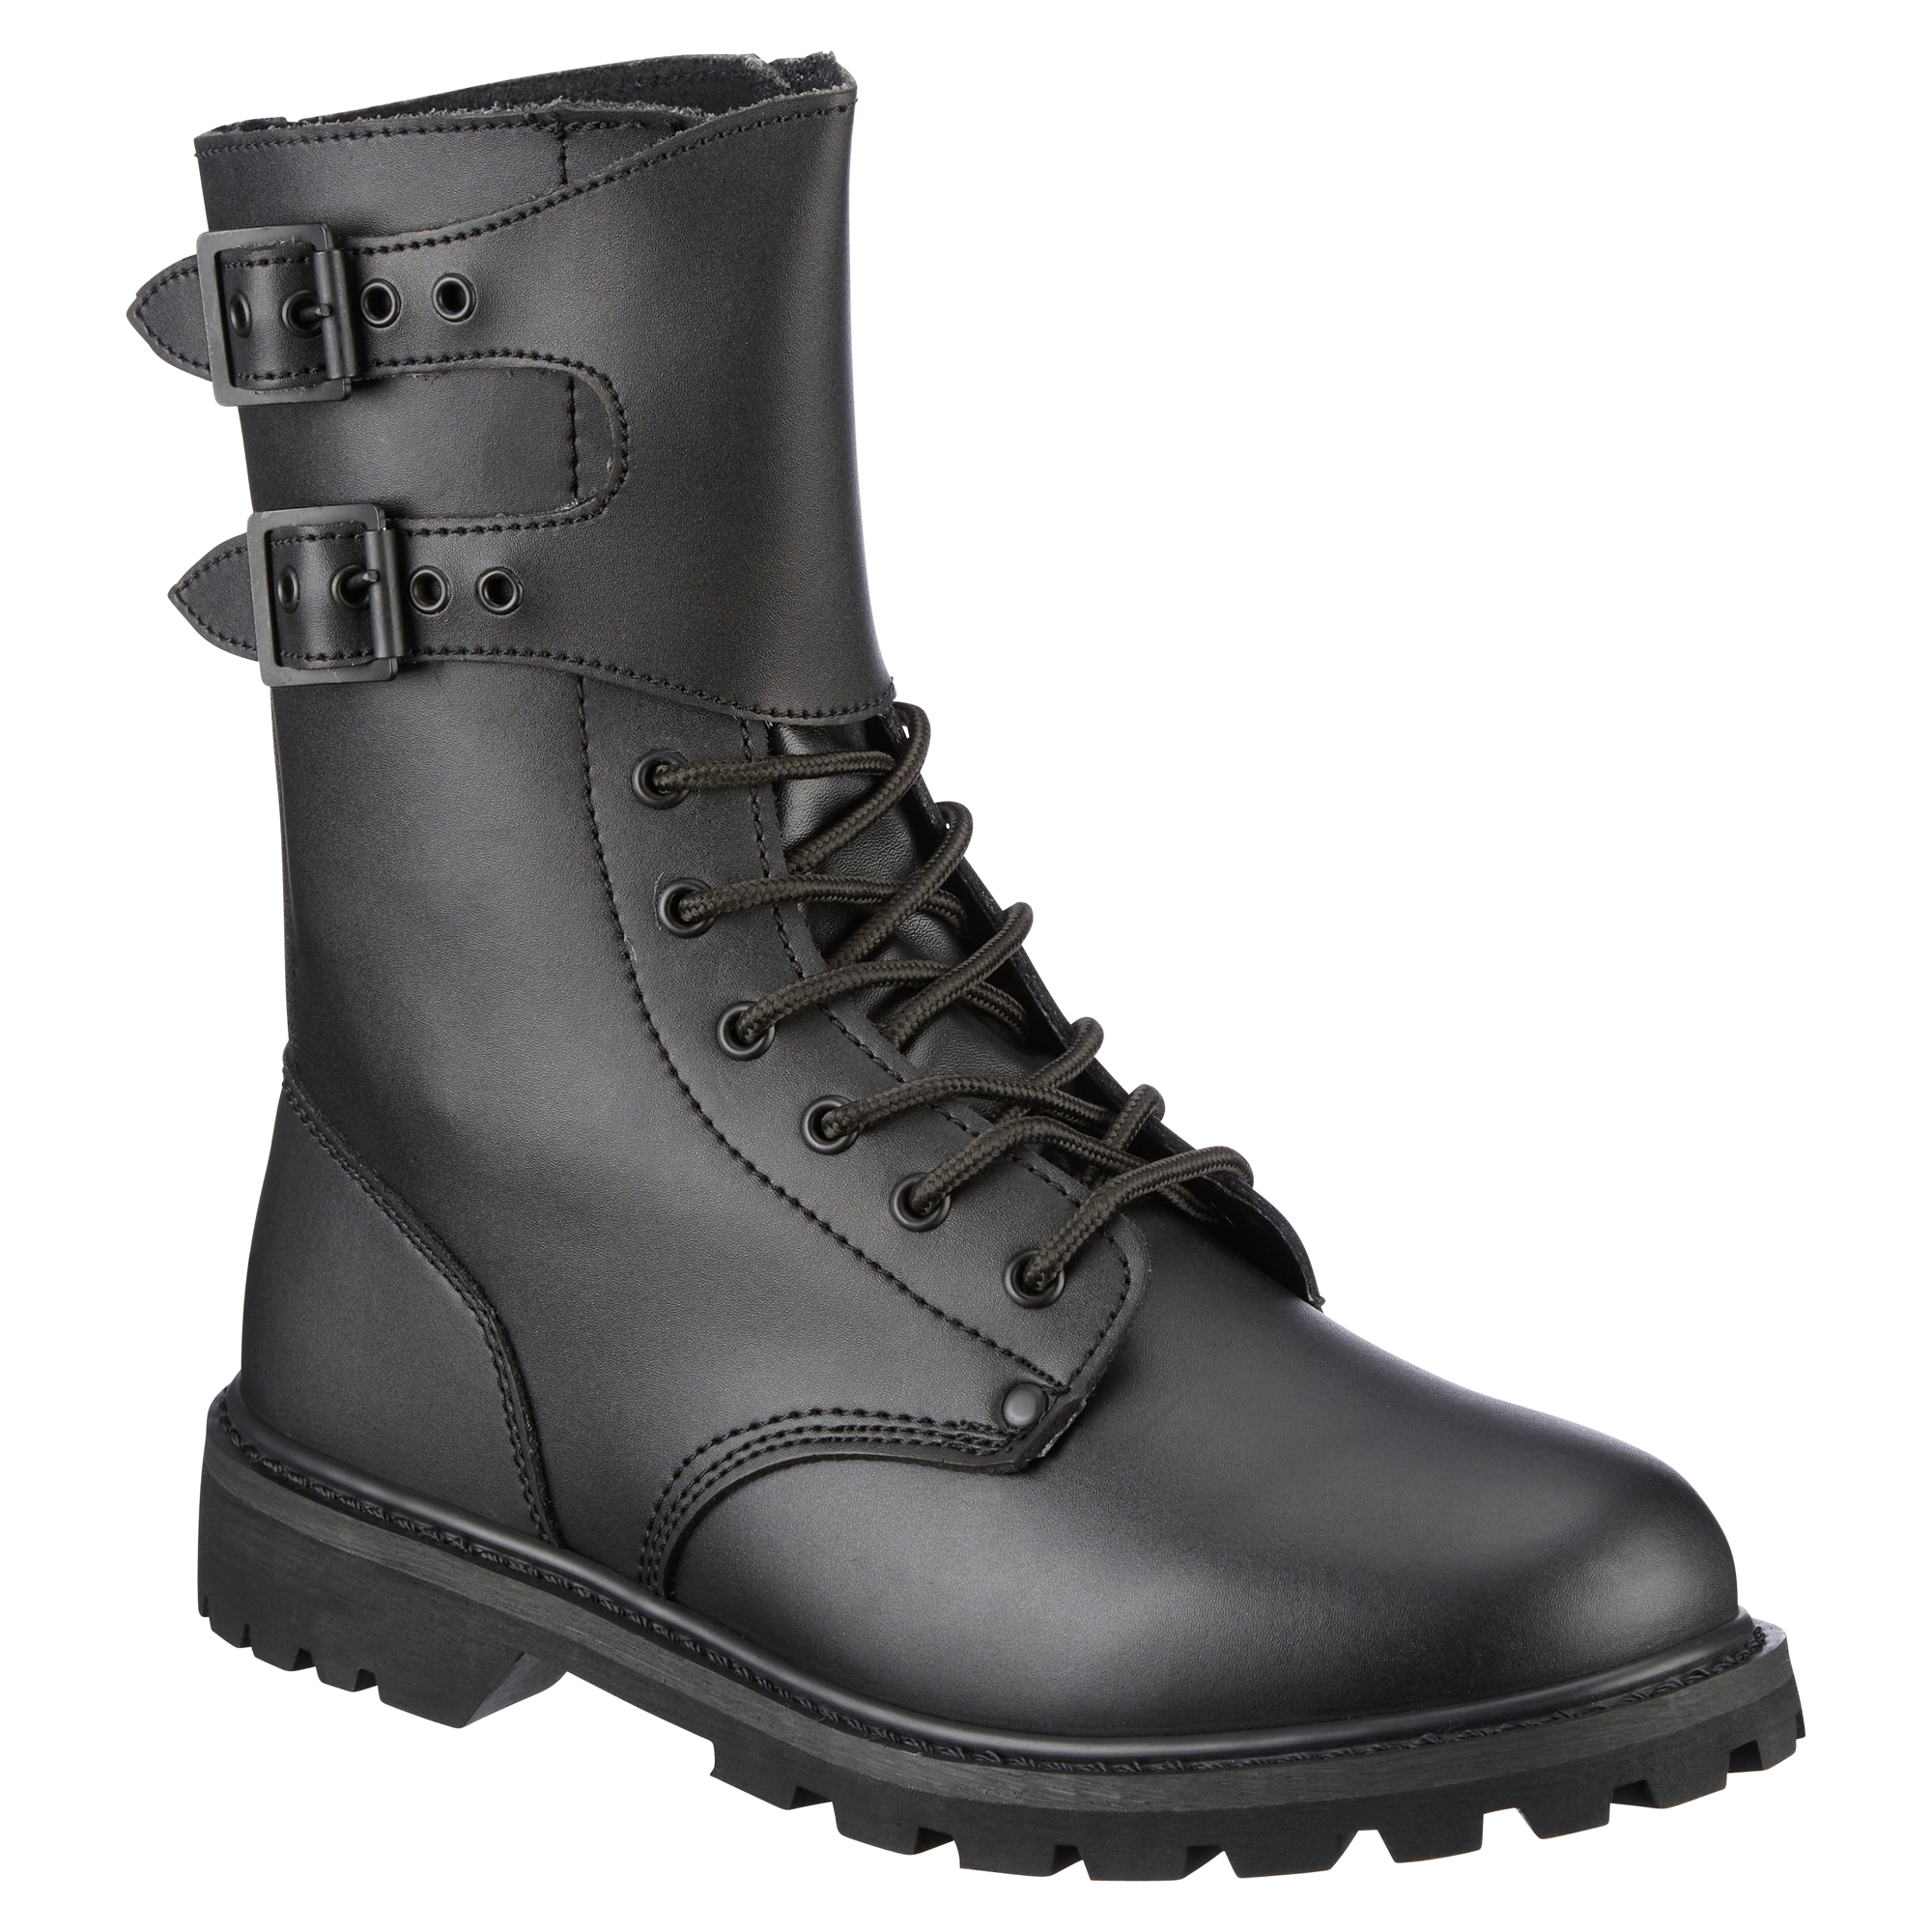 Purchase the French Combat Boots by ASMC